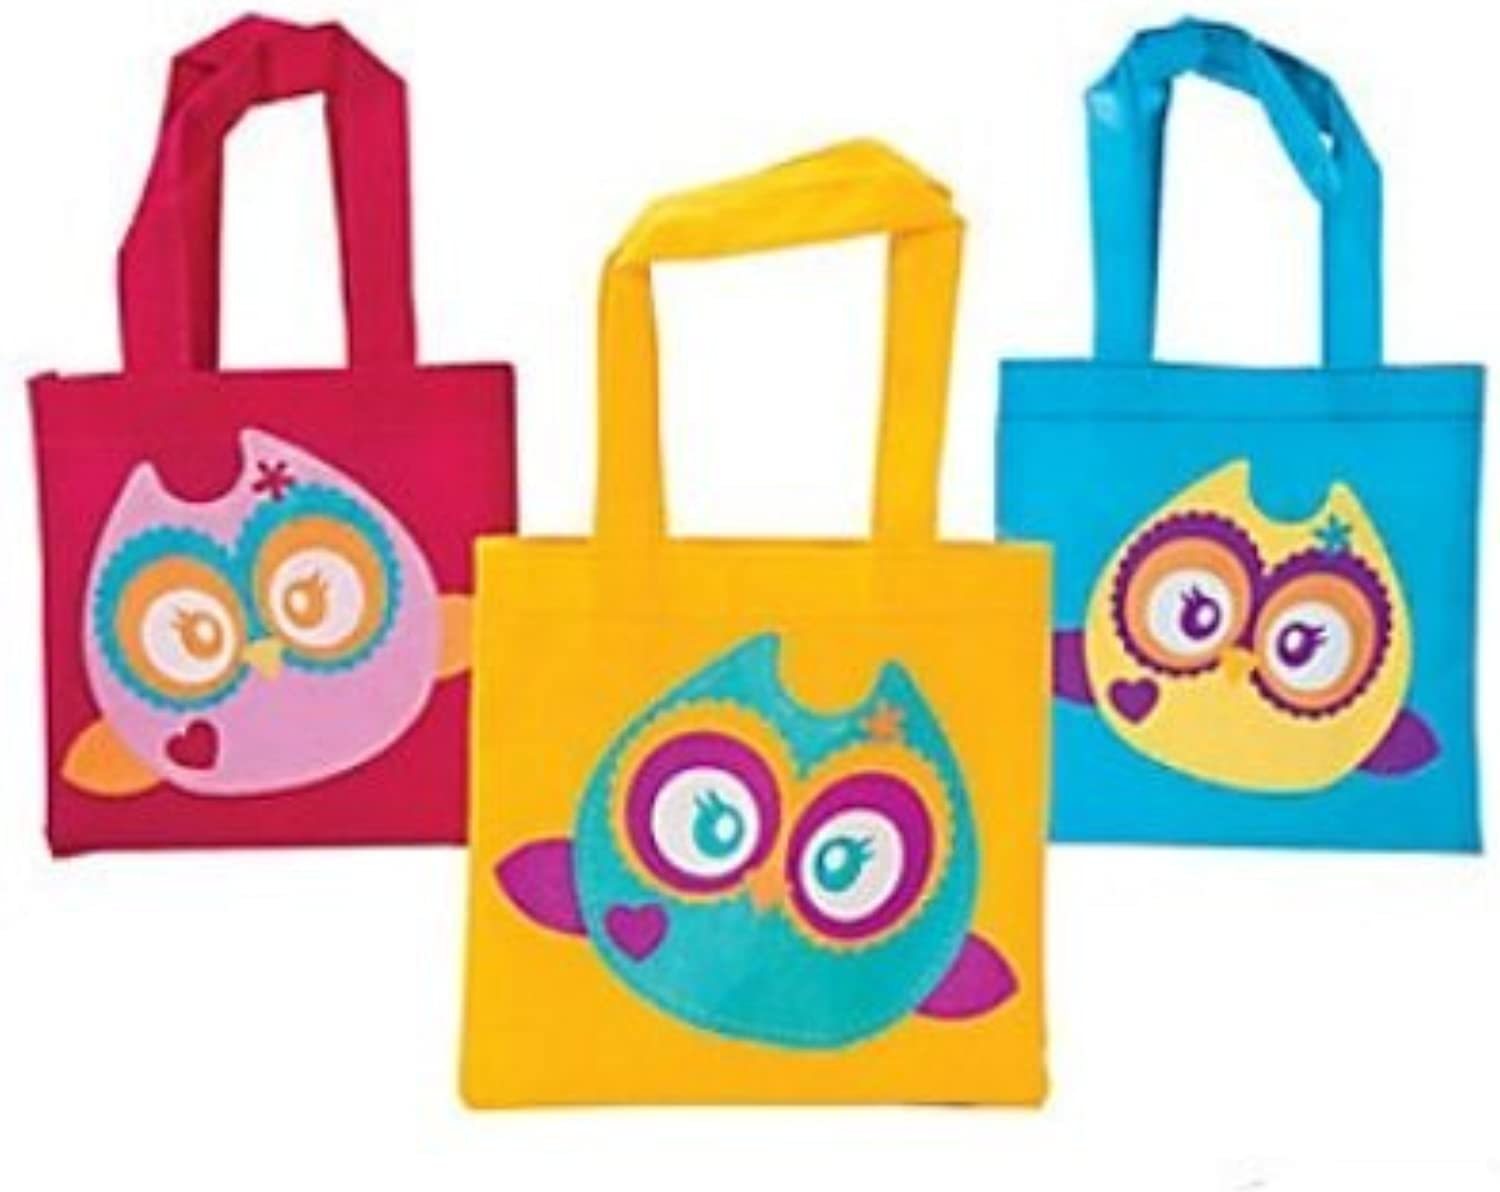 Owl Party Favor Tote Bags  12 ct by Party Supplies